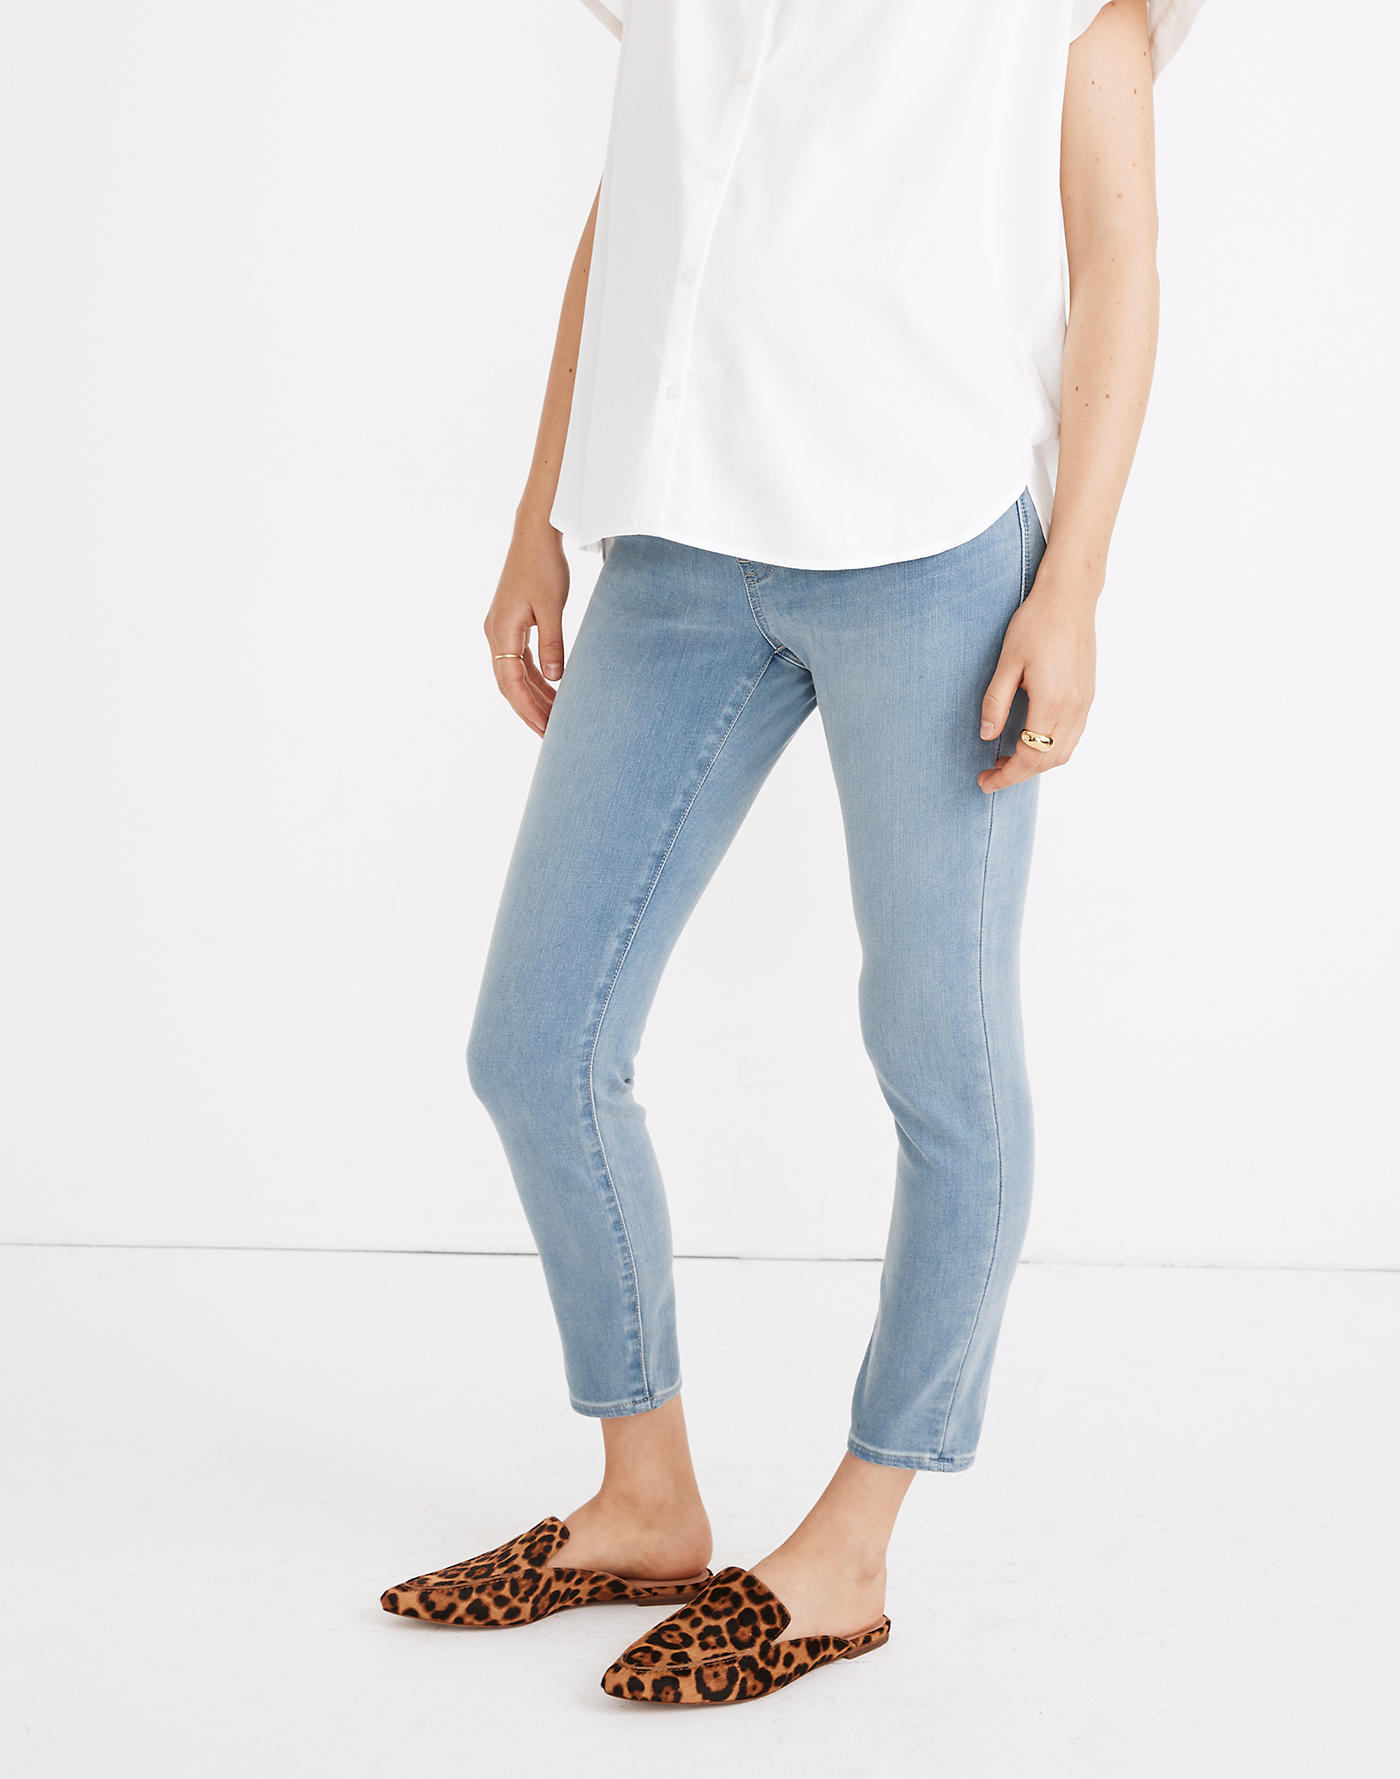 Madewell Maternity Over-the-Belly Roadtripper Jeggings